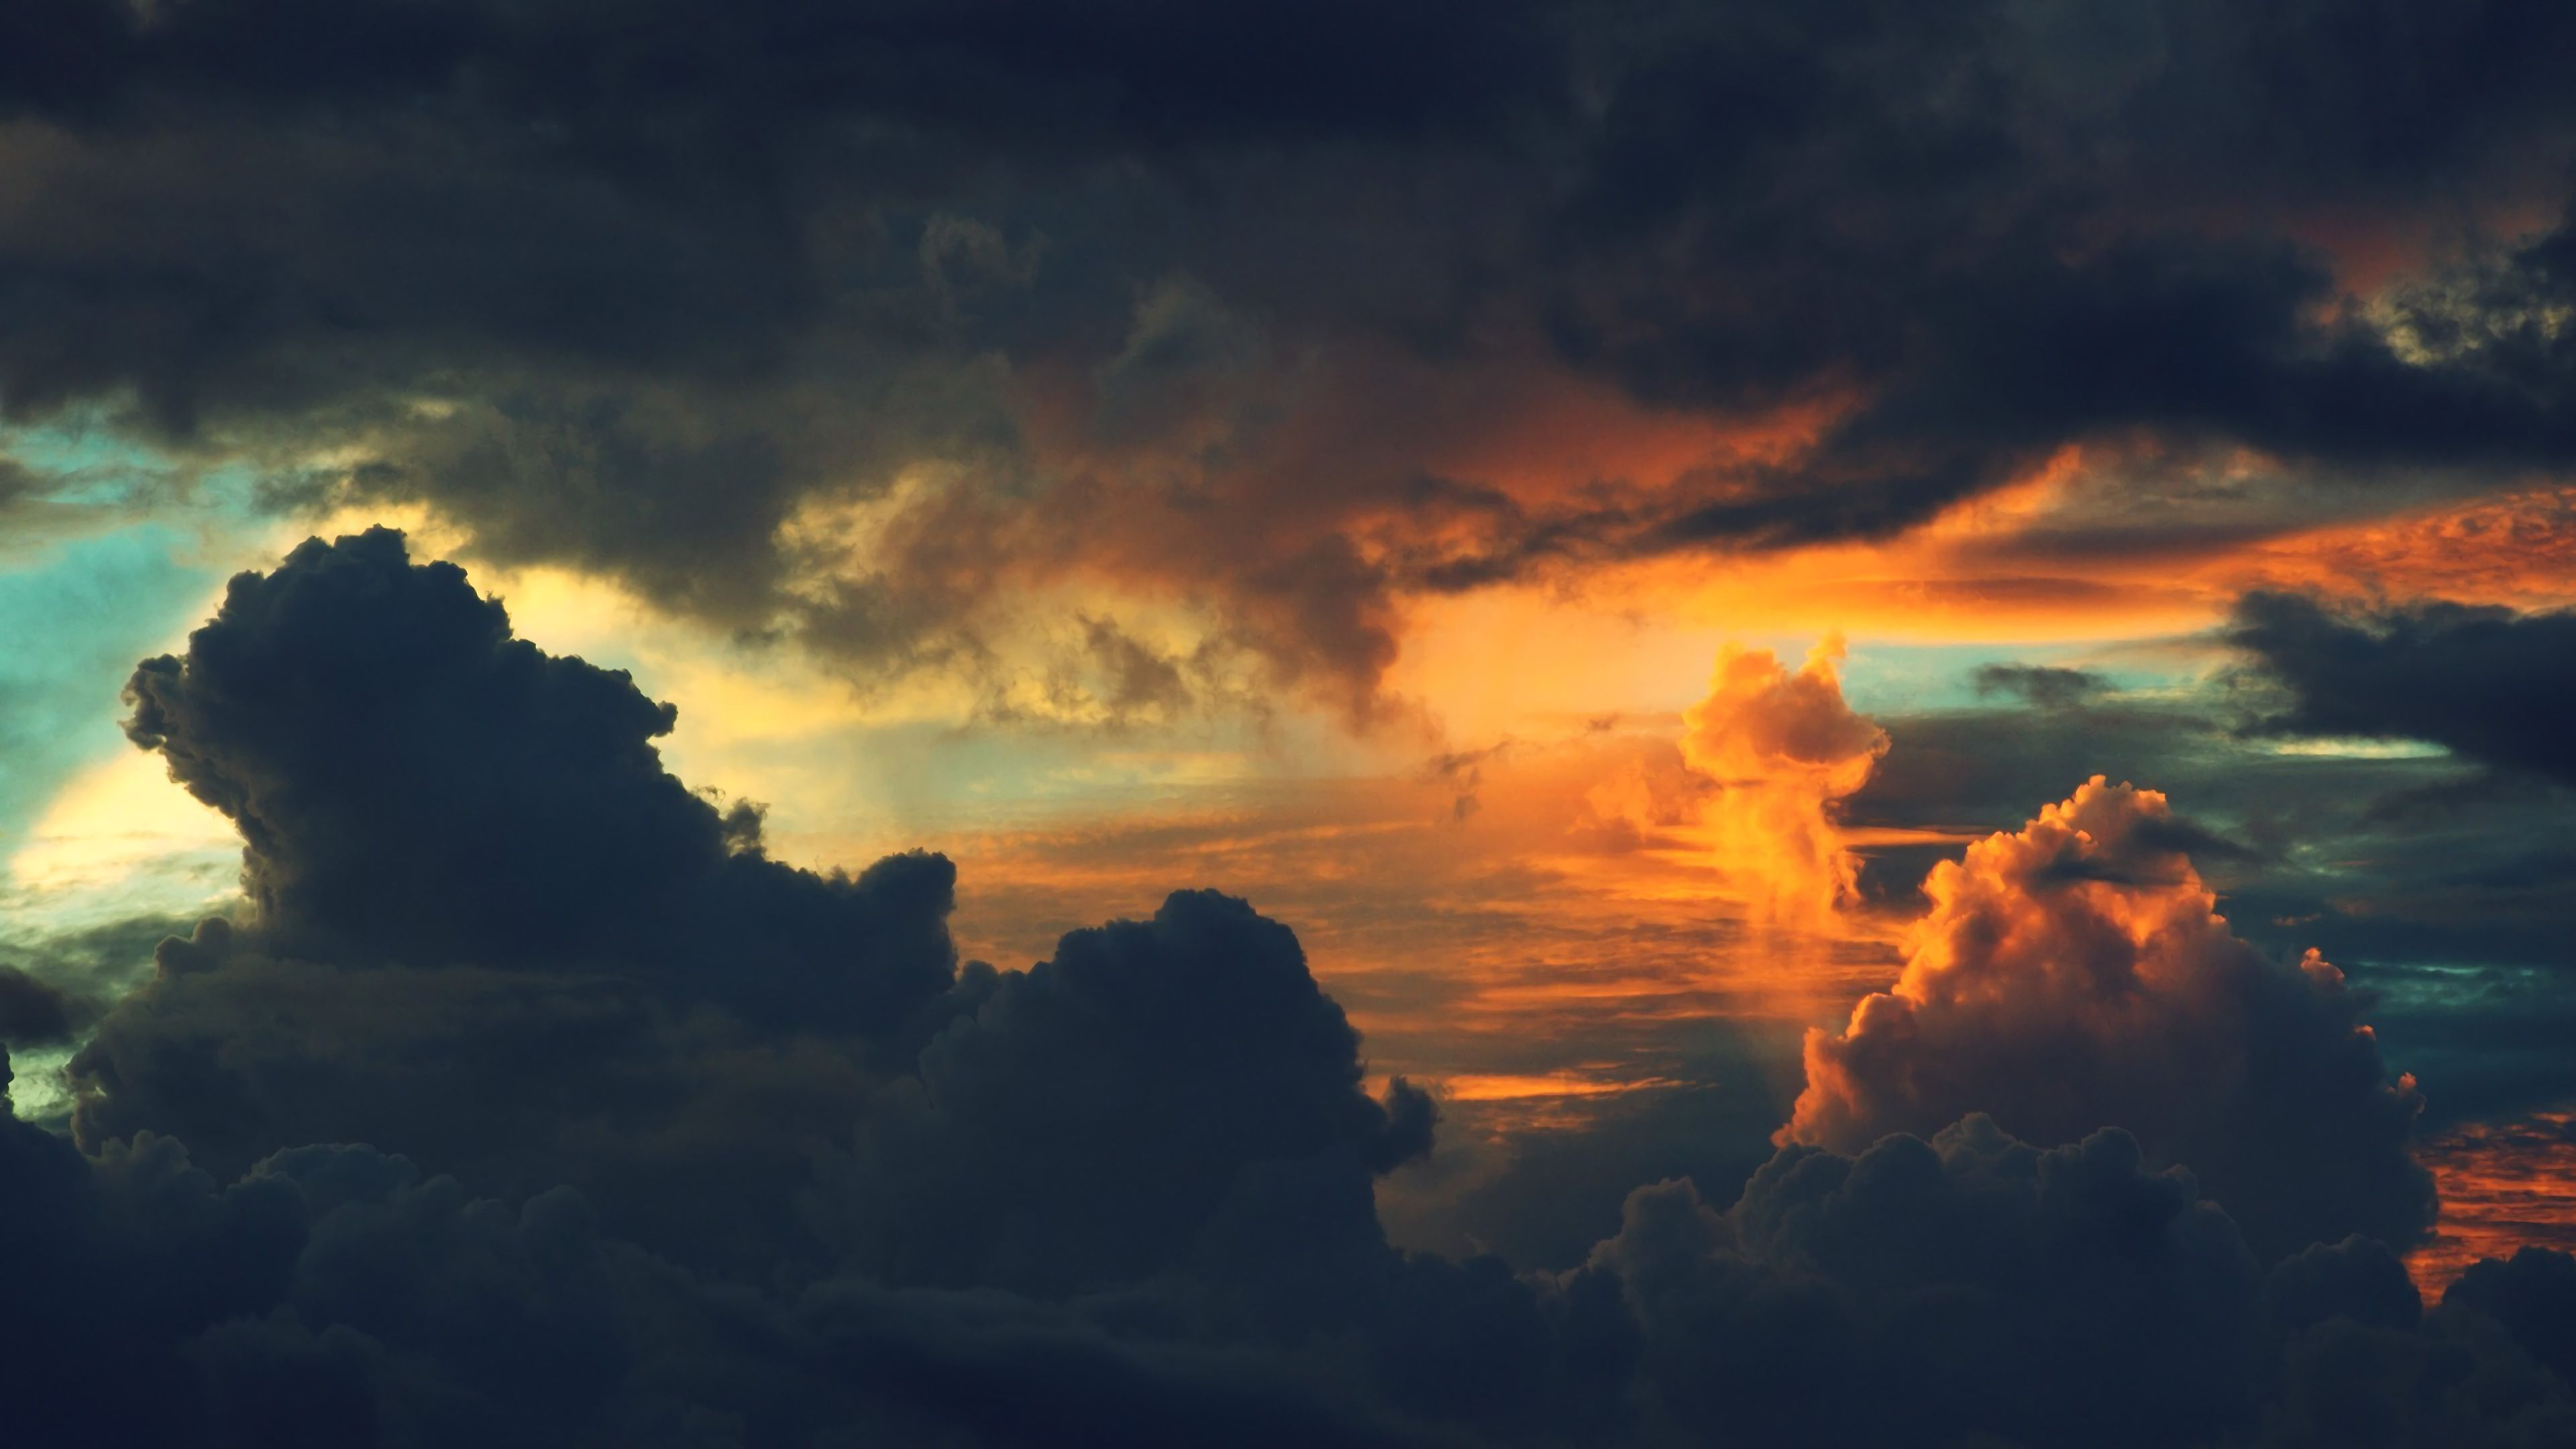 Sky Clouds 4k Sky Wallpapers Nature Wallpapers Hd Wallpapers Clouds Wallpapers 4k Wallpapers Sunset Wallpaper Cloud Wallpaper Nature Wallpaper